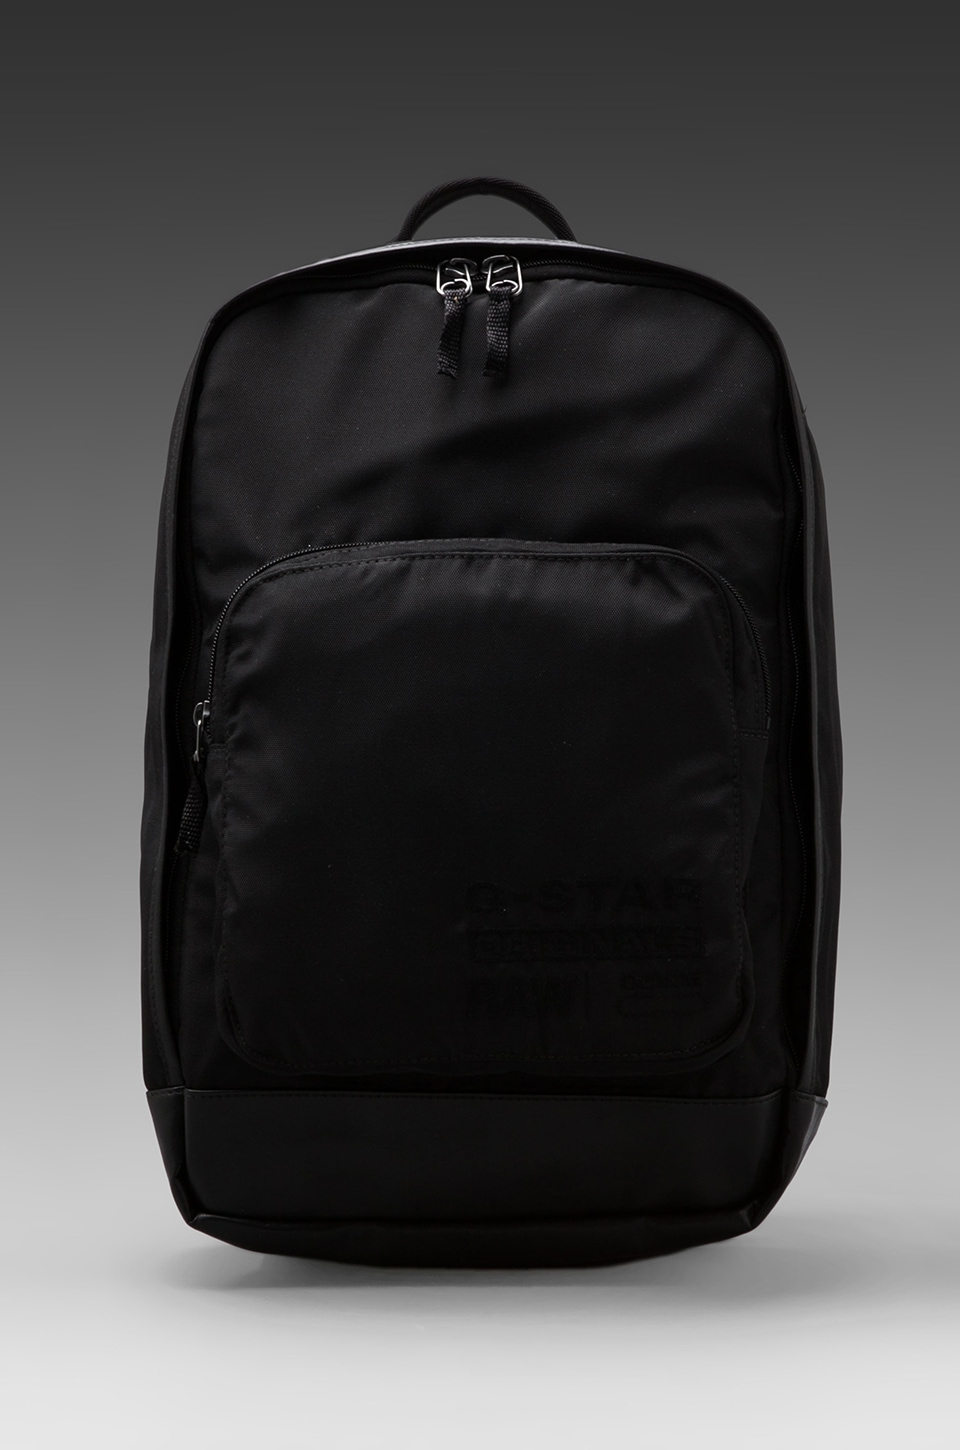 G-Star Milton Originals Backpack in Black